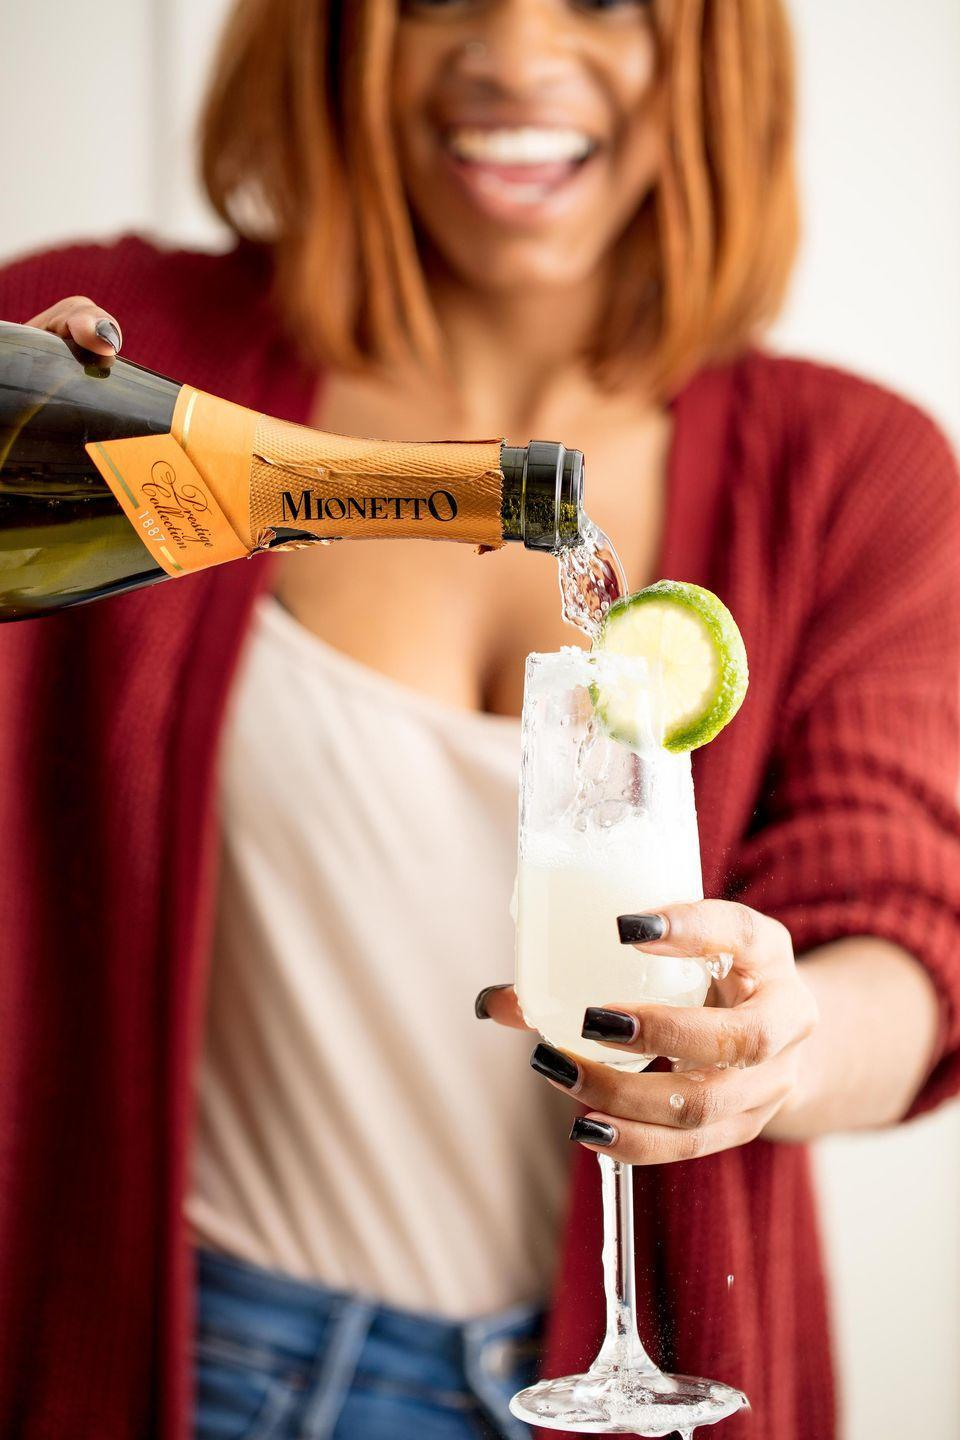 """<p>This margarita gets a festive boost with the addition of your favorite bubbly.</p><p>Get the recipe from <a href=""""https://www.delish.com/cooking/recipe-ideas/recipes/a50633/champagne-margaritas-recipe/"""" rel=""""nofollow noopener"""" target=""""_blank"""" data-ylk=""""slk:Delish"""" class=""""link rapid-noclick-resp"""">Delish</a>. </p>"""